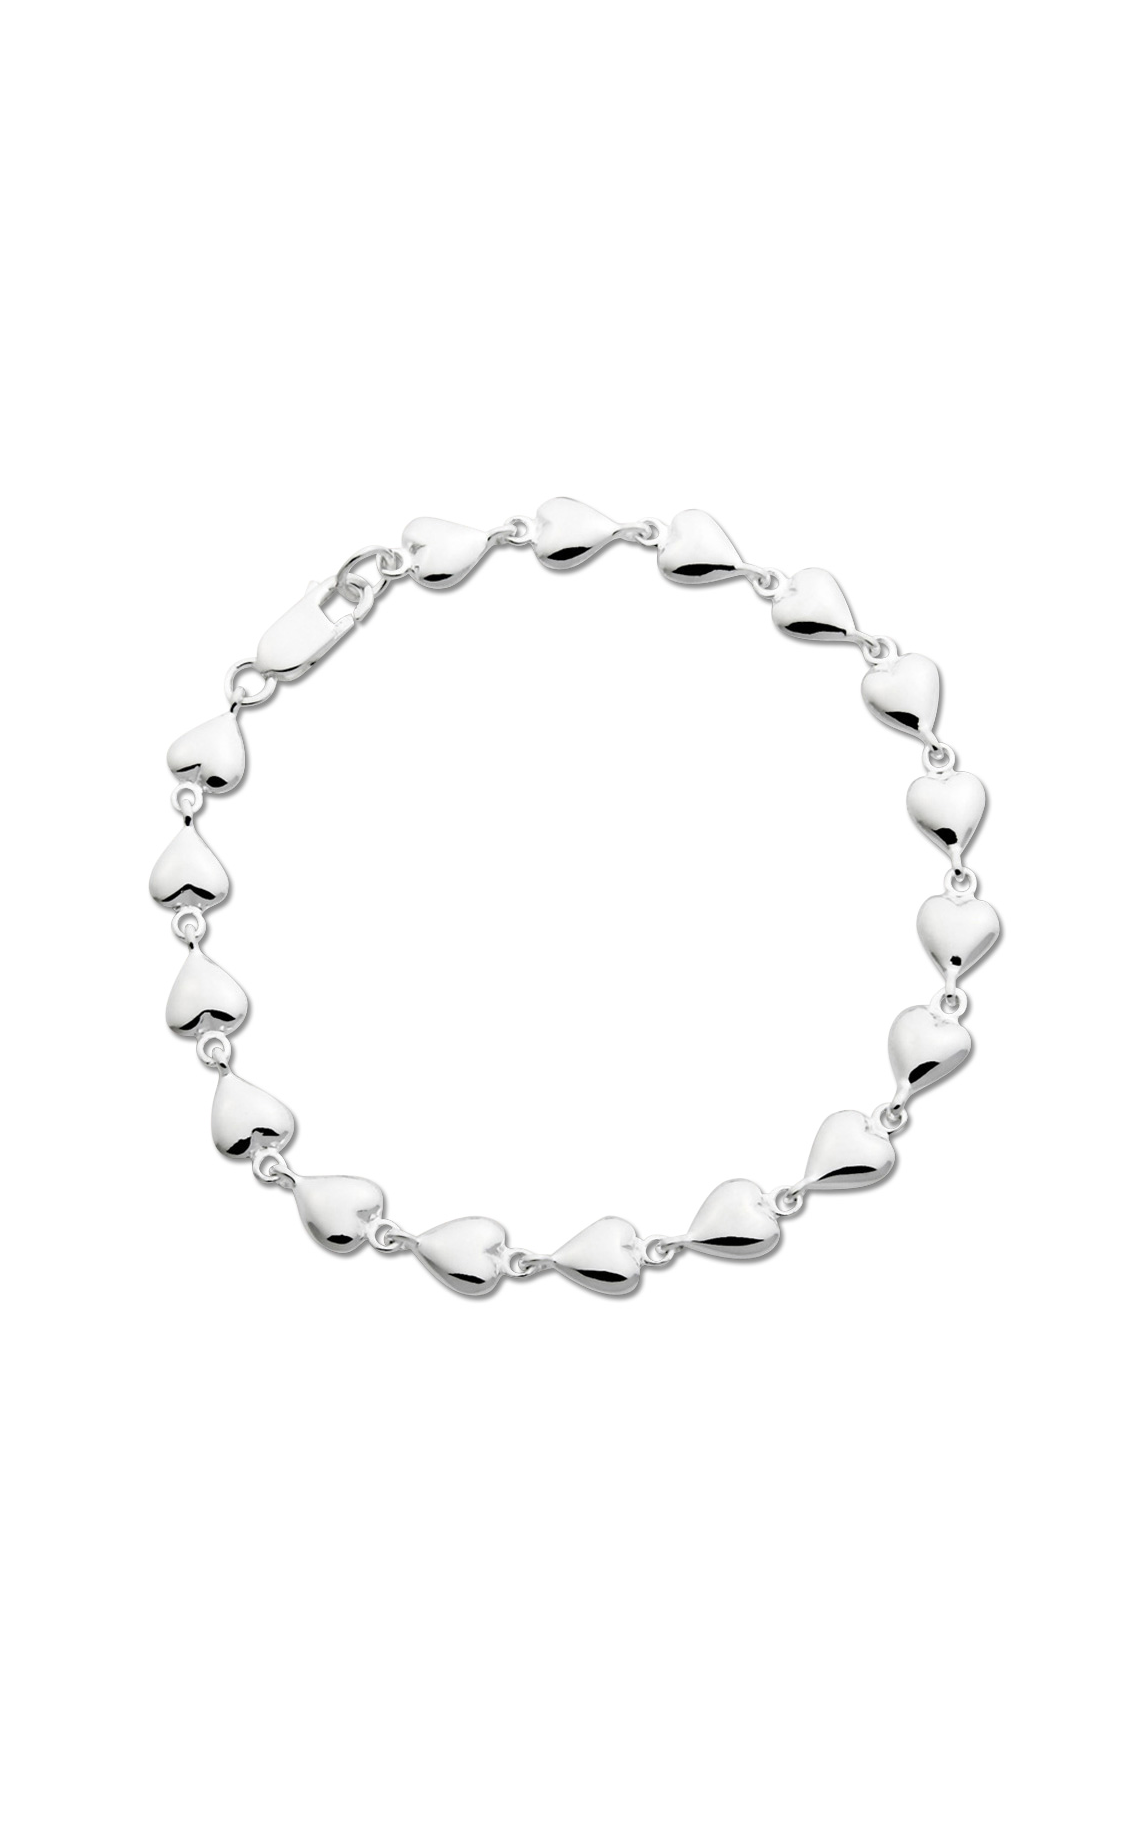 Zina Contemporary Bracelet A27-7 product image